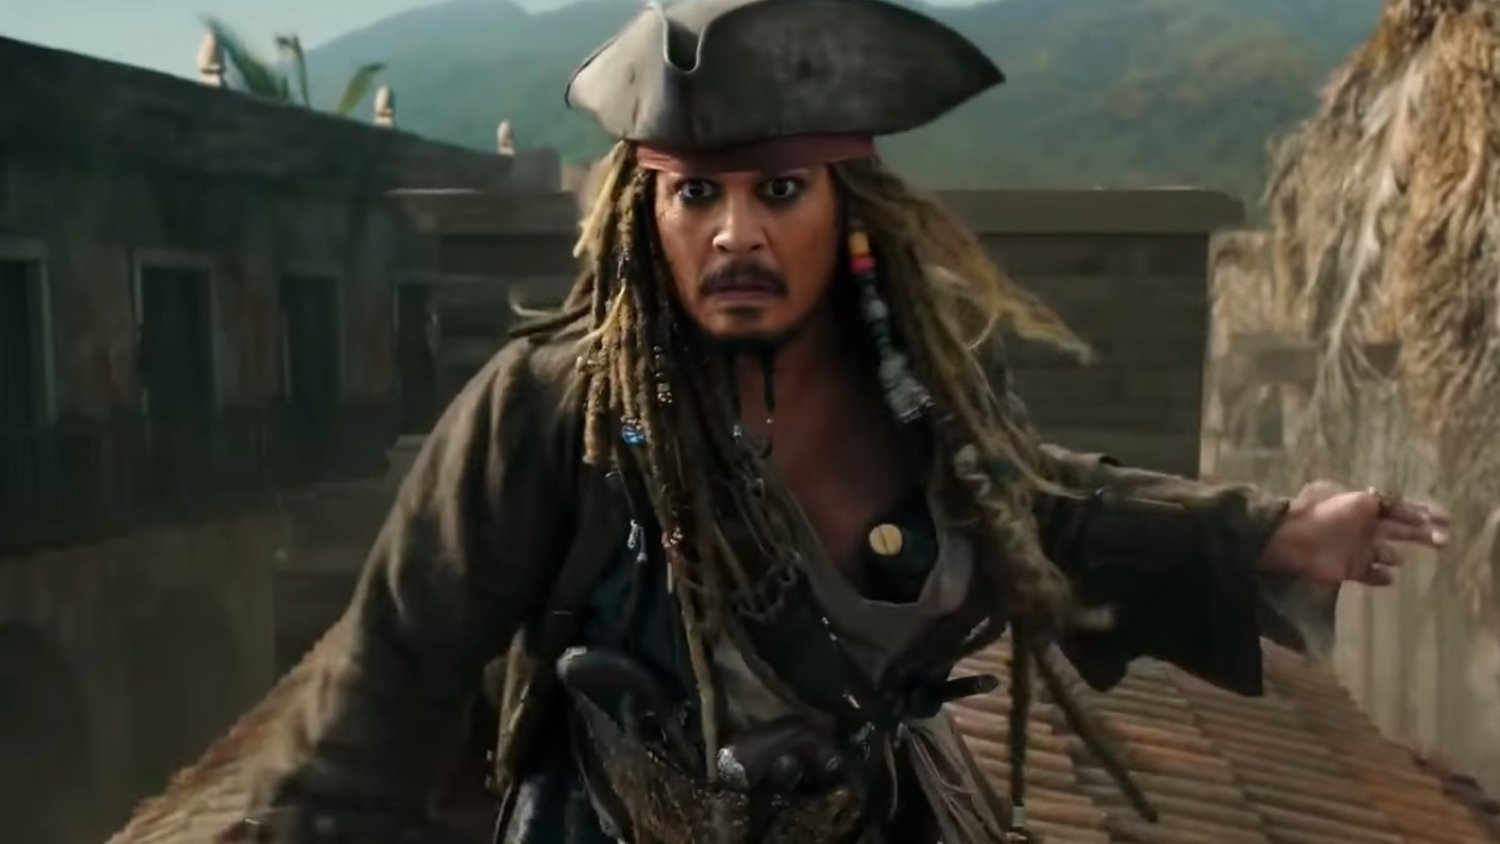 New Trailer For PIRATES OF THE CARIBBEAN: DEAD MEN TELL NO TALES -